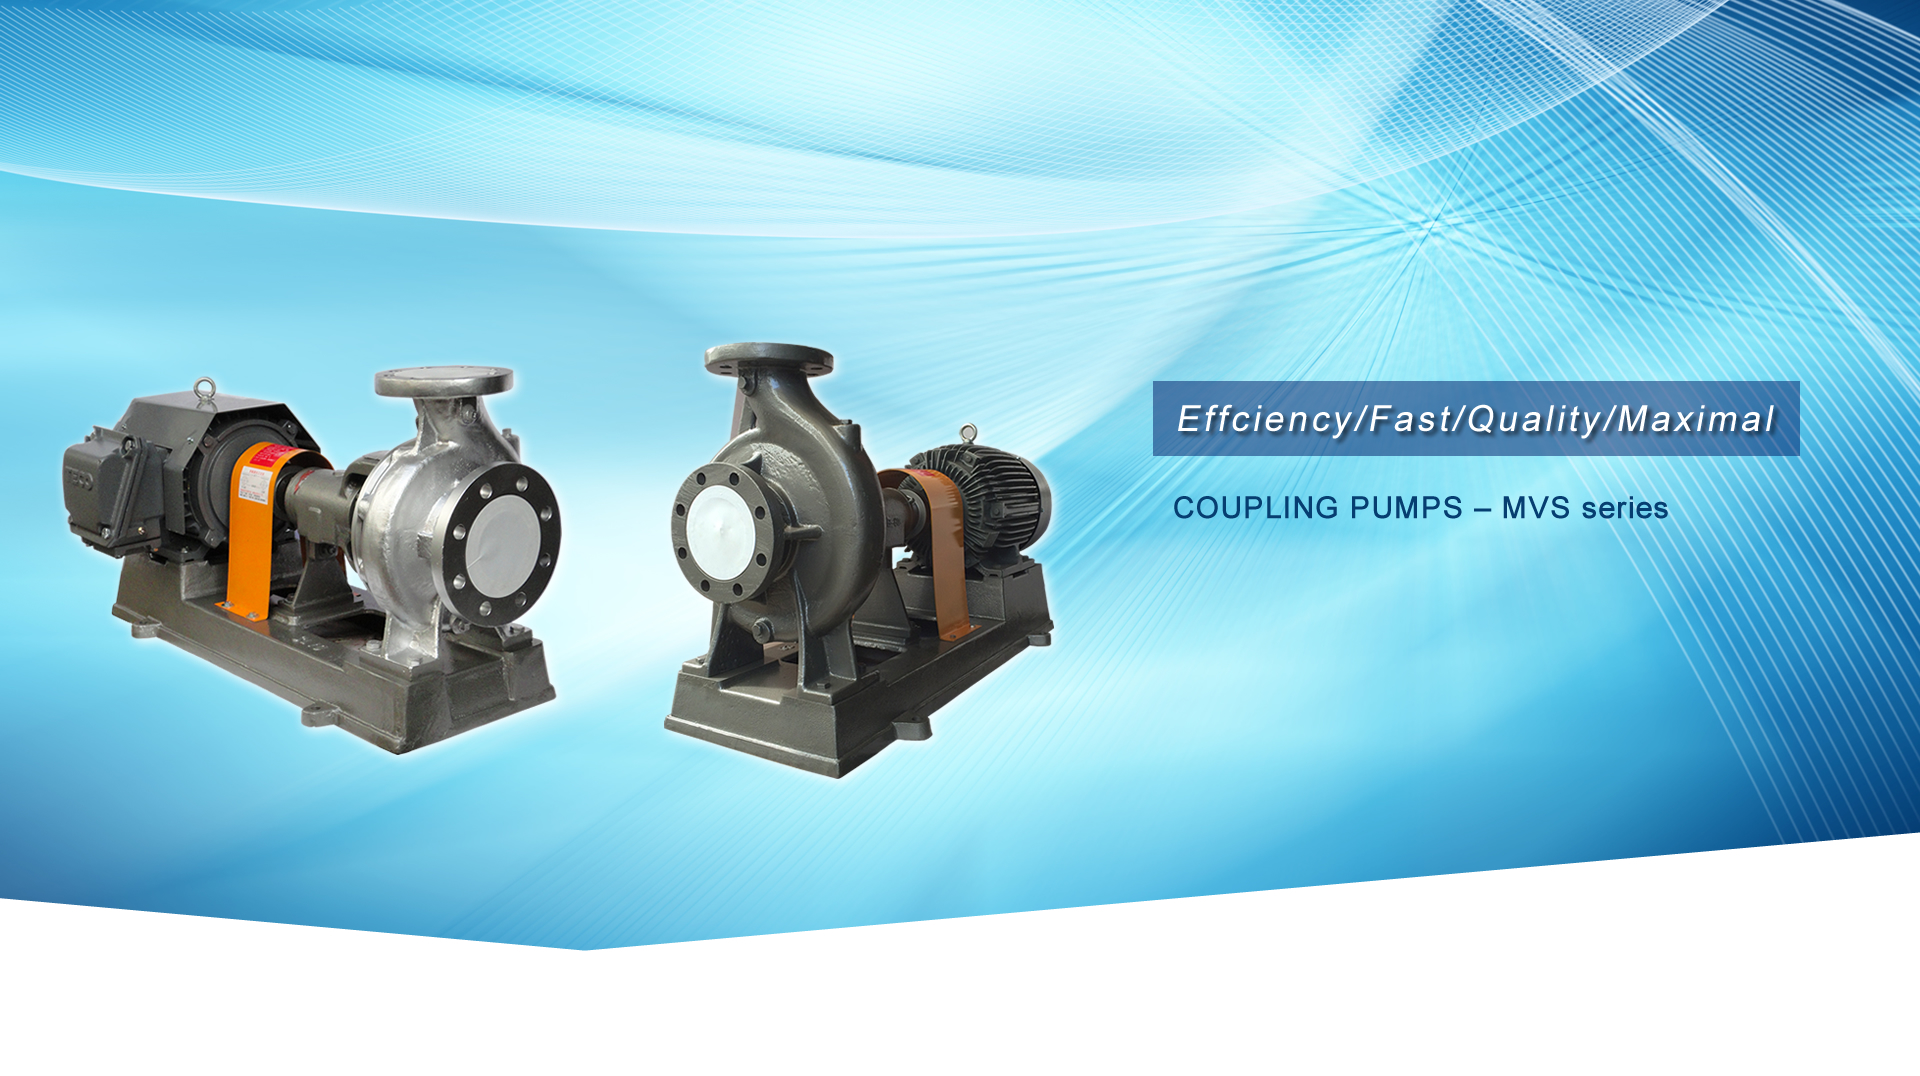 COUPLING PUMPS – MVS series